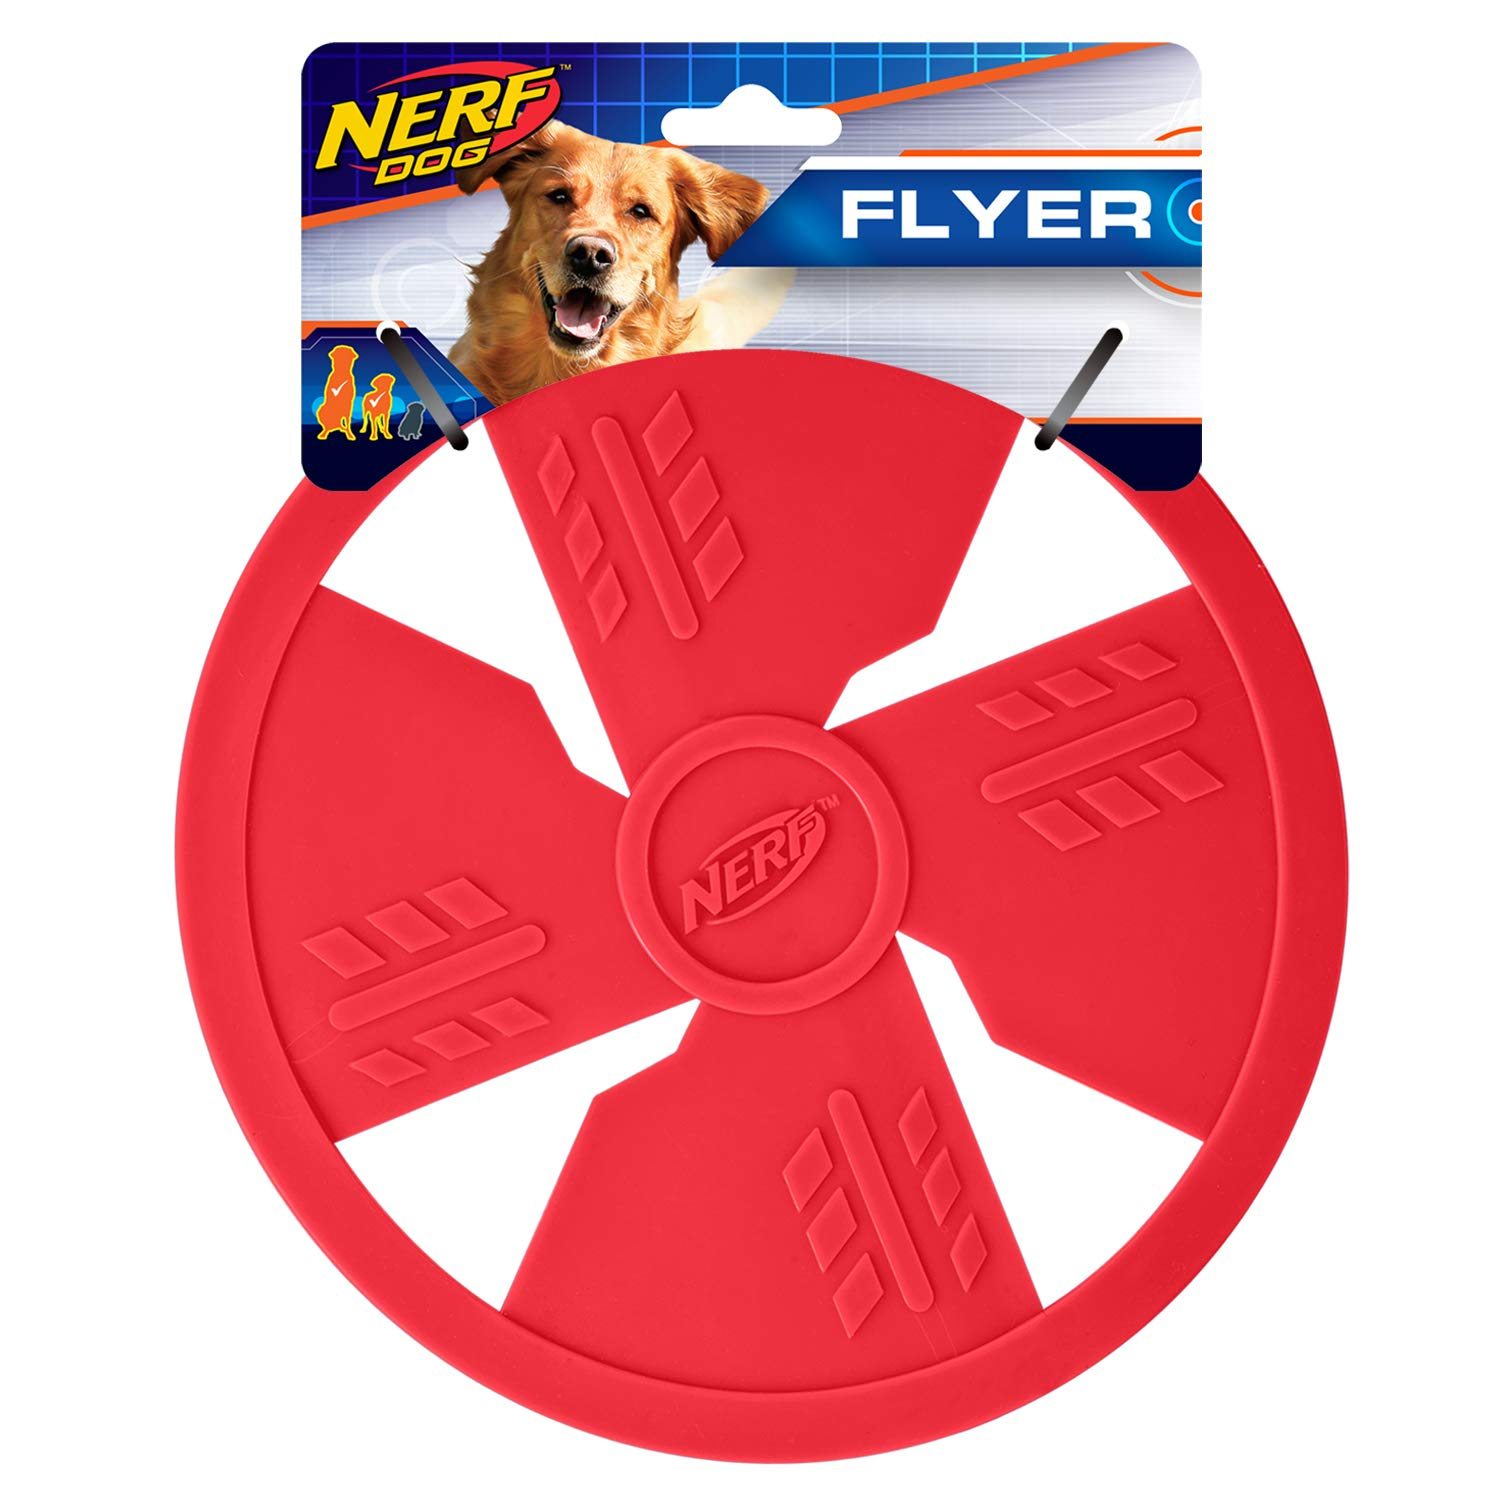 Nerf Dog Small to Medium Red TPR Flyer Dog Toy